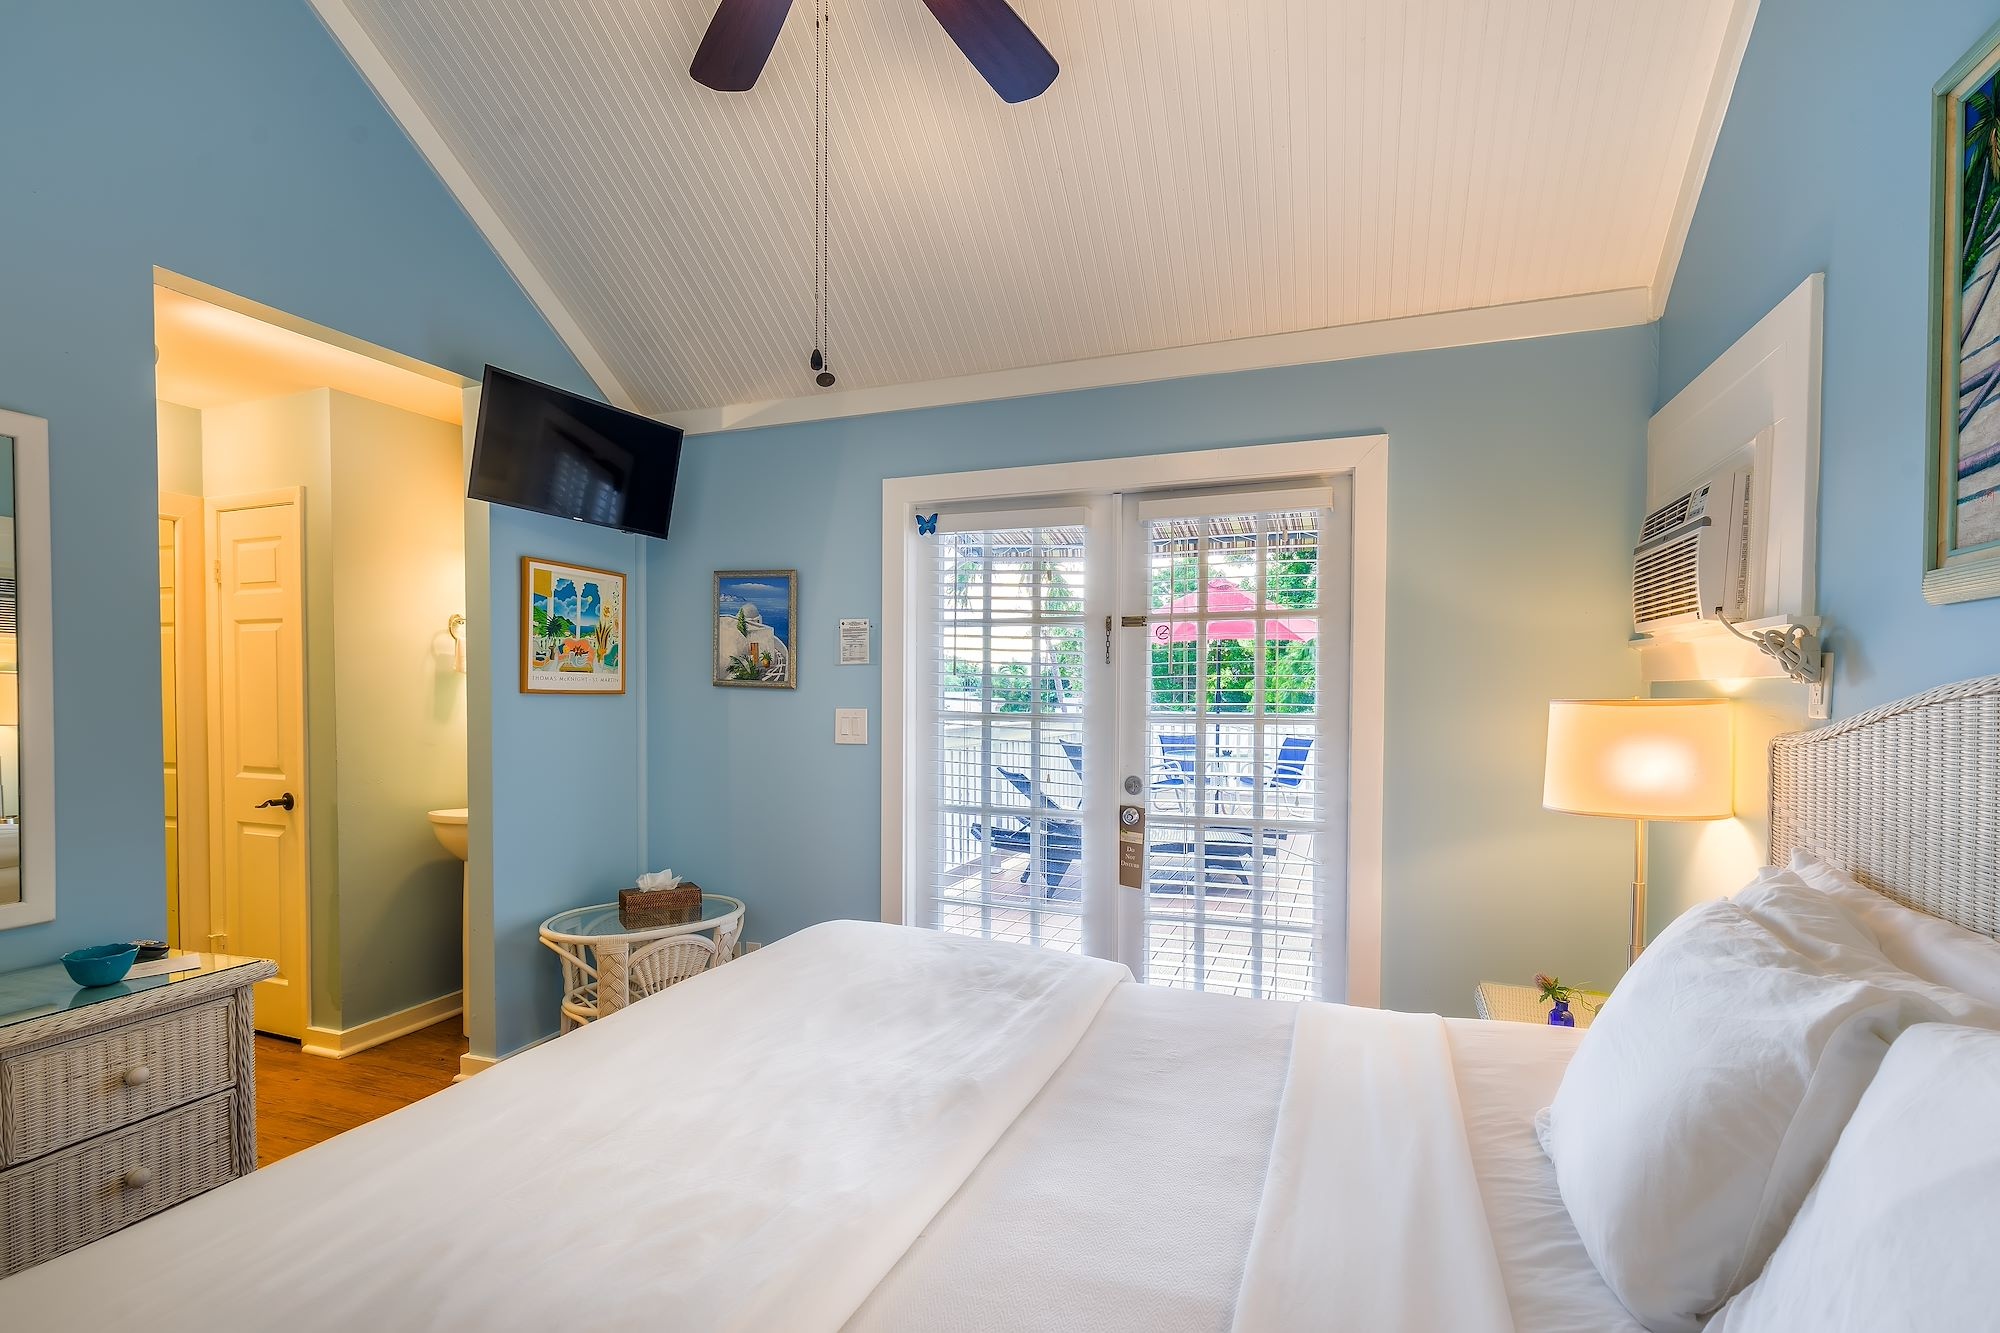 Our Deluxe King Room with Patio in Key West